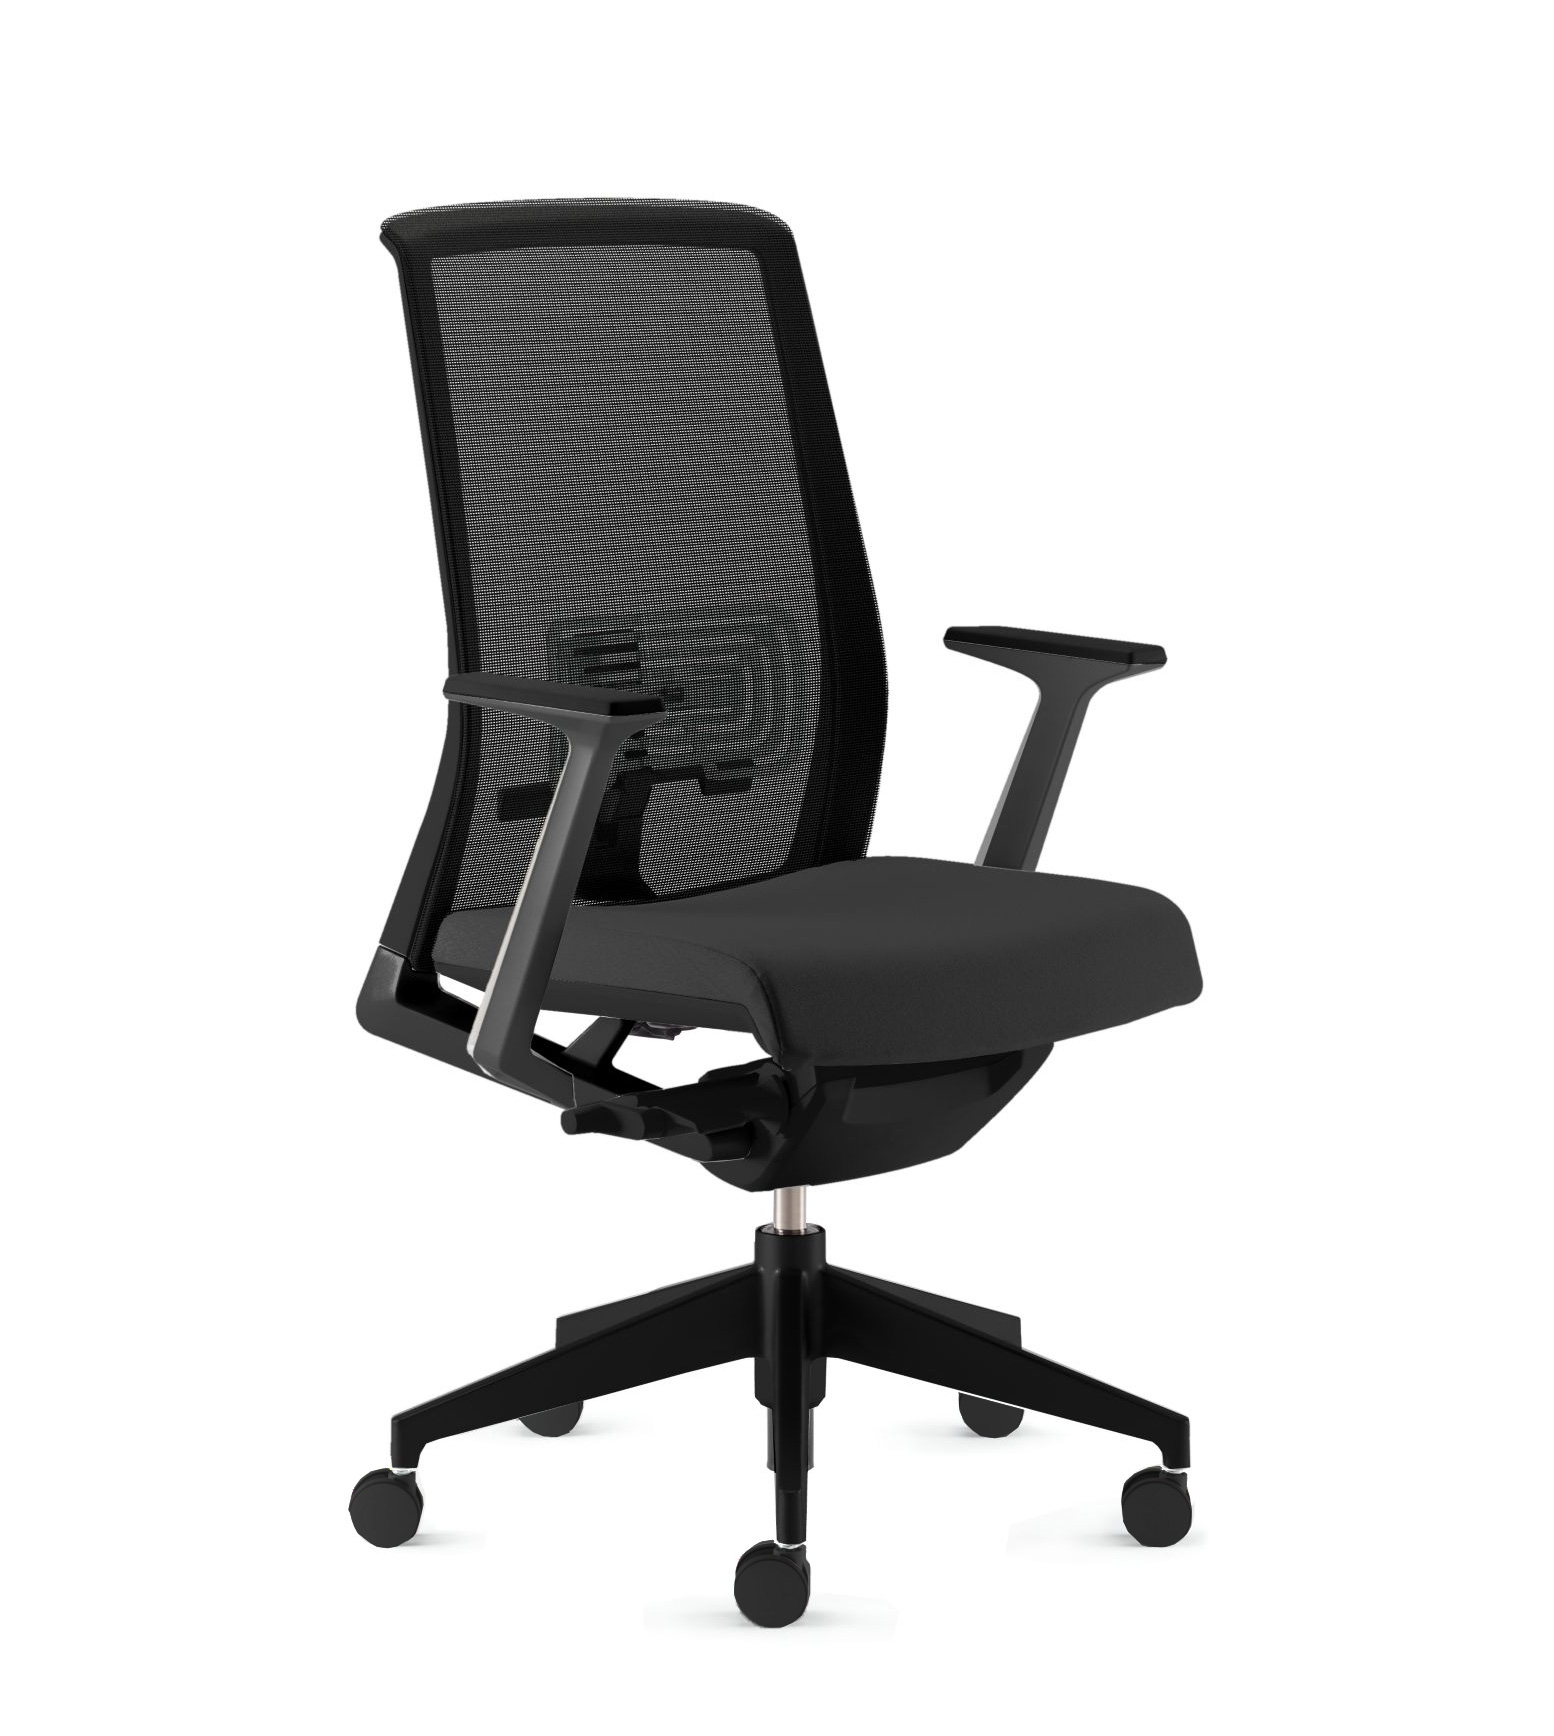 Haworth Very Task Chair That fers the fy Home fice Space